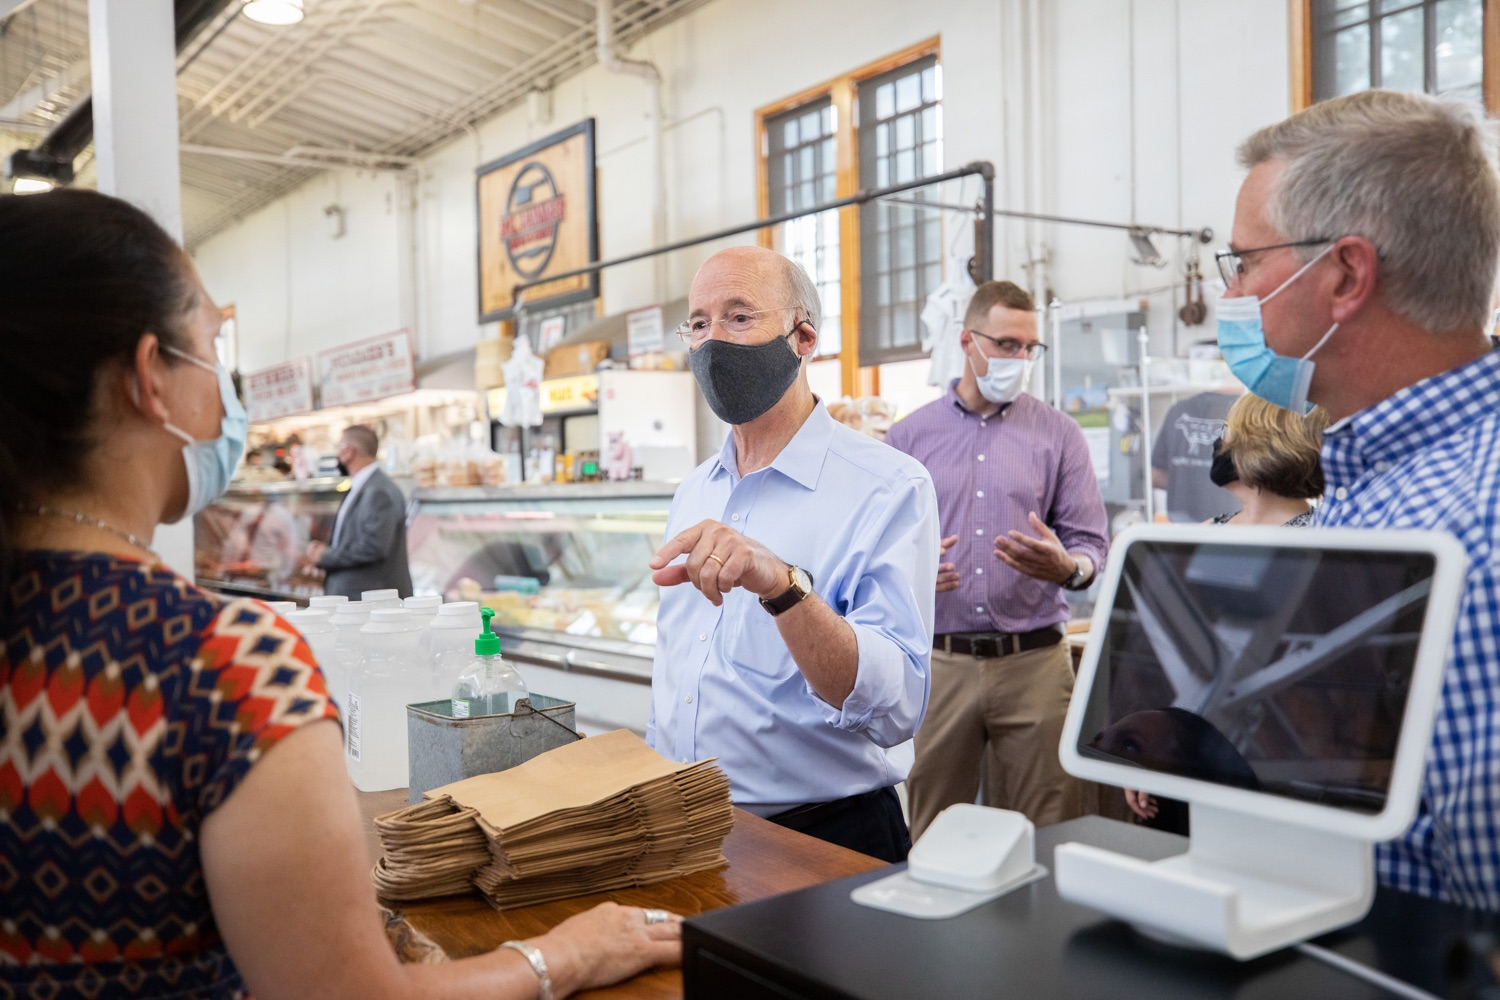 """<a href=""""https://filesource.wostreaming.net/commonwealthofpa/photo/18155_gov_freshFood_dz_006.jpg"""" target=""""_blank"""">⇣Download Photo<br></a>Pennsylvania Governor Tom Wolf taking a tour of the of the Broad Street Market with Pennsylvania Agriculture Secretary Russell.   Governor Tom Wolf today announced that $10 million is now available for Pennsylvania businesses that have worked to maintain access to fresh, healthy food throughout the COVID-19 pandemic.  Harrisburg, PA  July 9, 2020"""